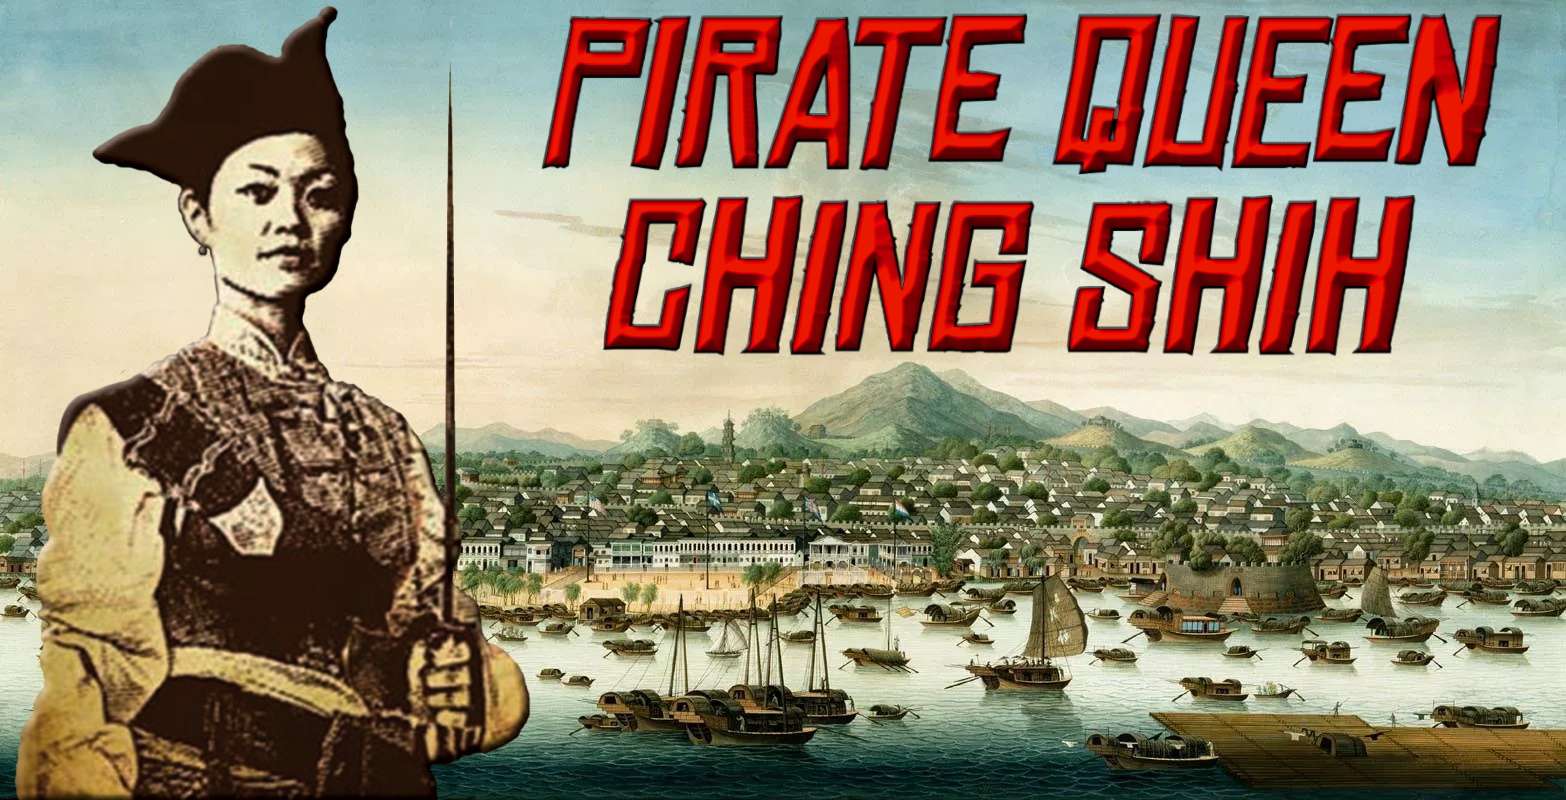 pirate queen ching shih BANNER 5e.jpg